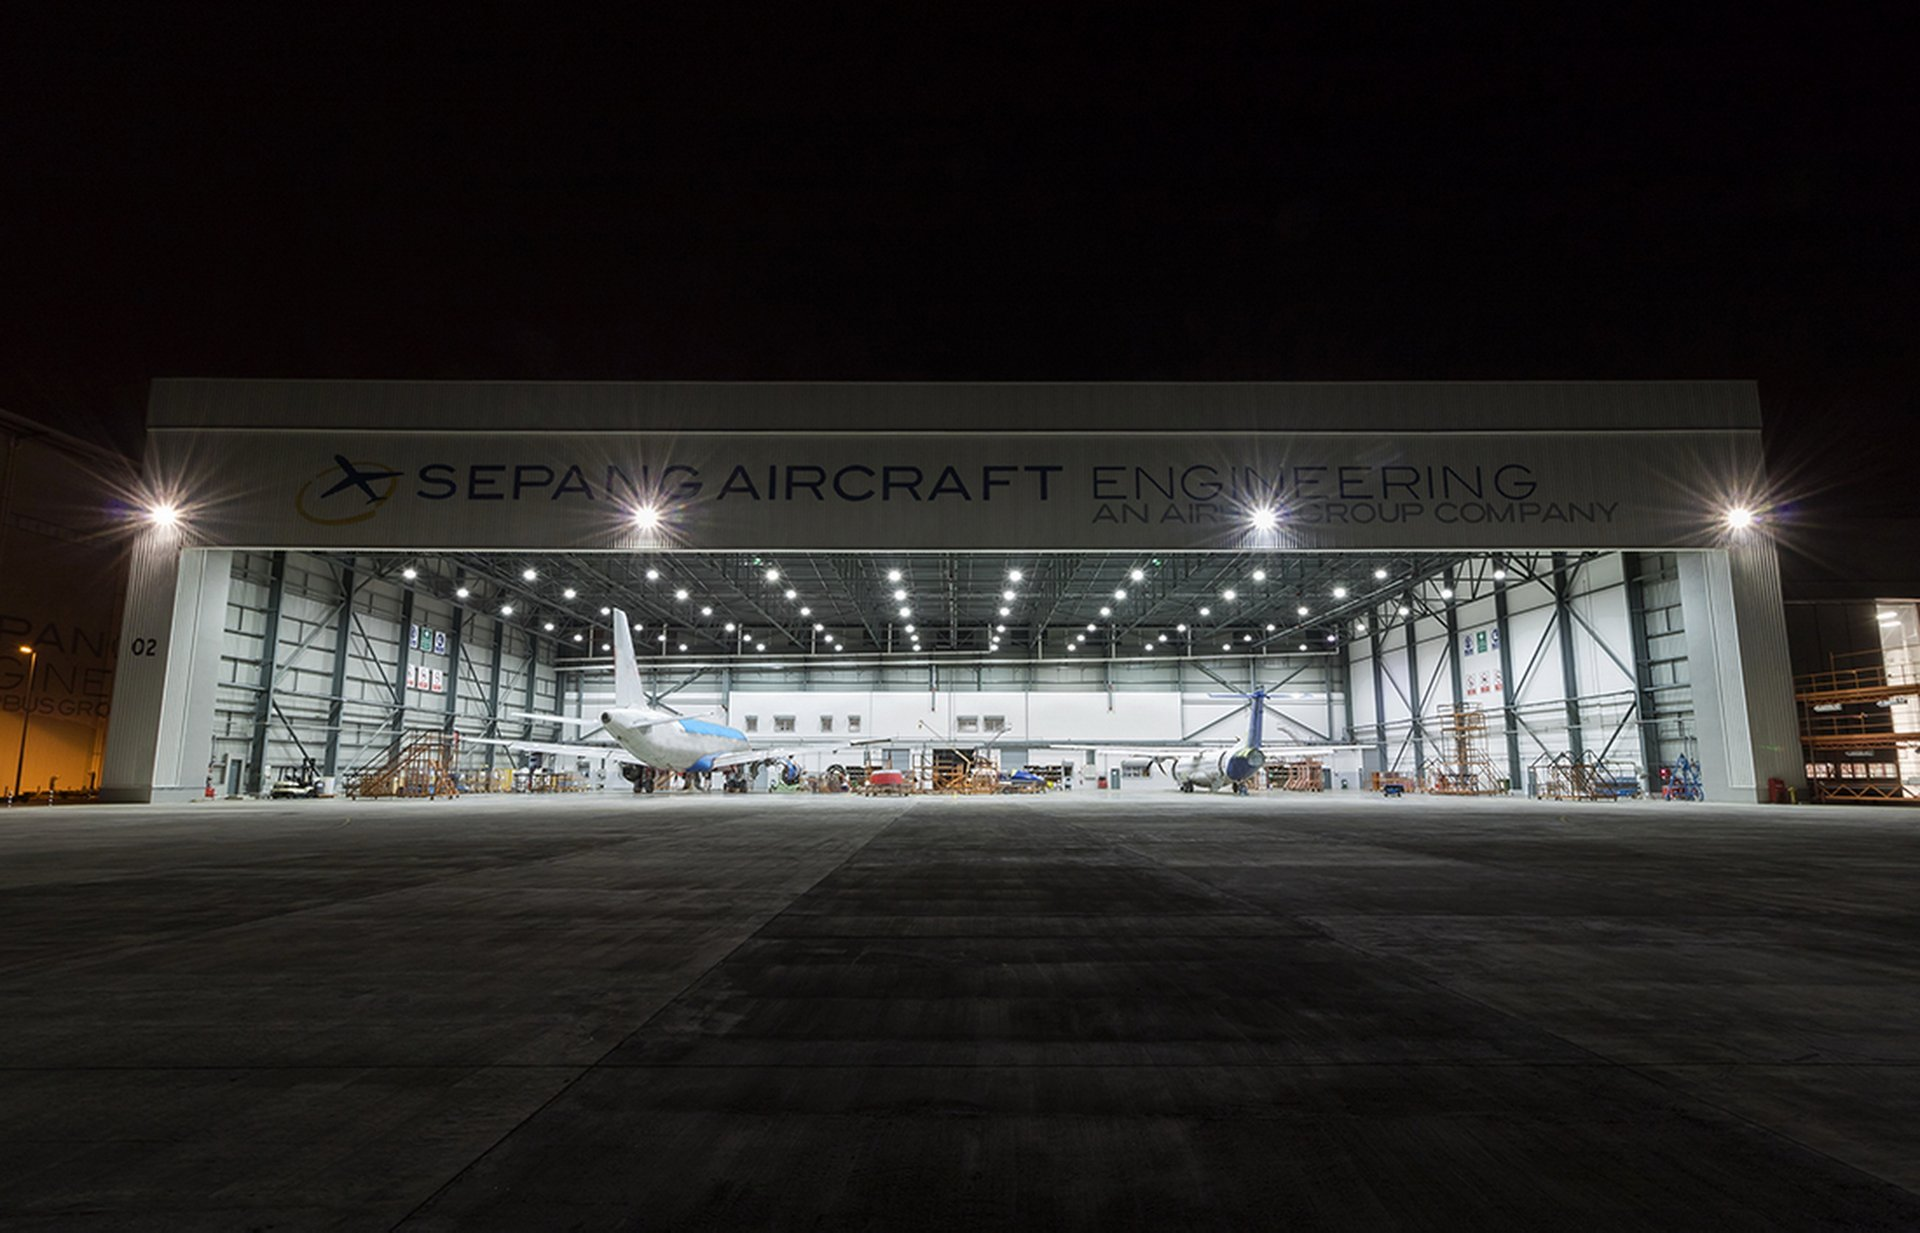 Sepang Aircraft Engineering (SAE), a maintenance, repair and overhaul centre based in Kuala Lumpur, Malaysia, had been partially owned by Airbus since 2011 before becoming a fully-owned subsidiary in October 2017 following Airbus' acquisition of the centre's remaining shares